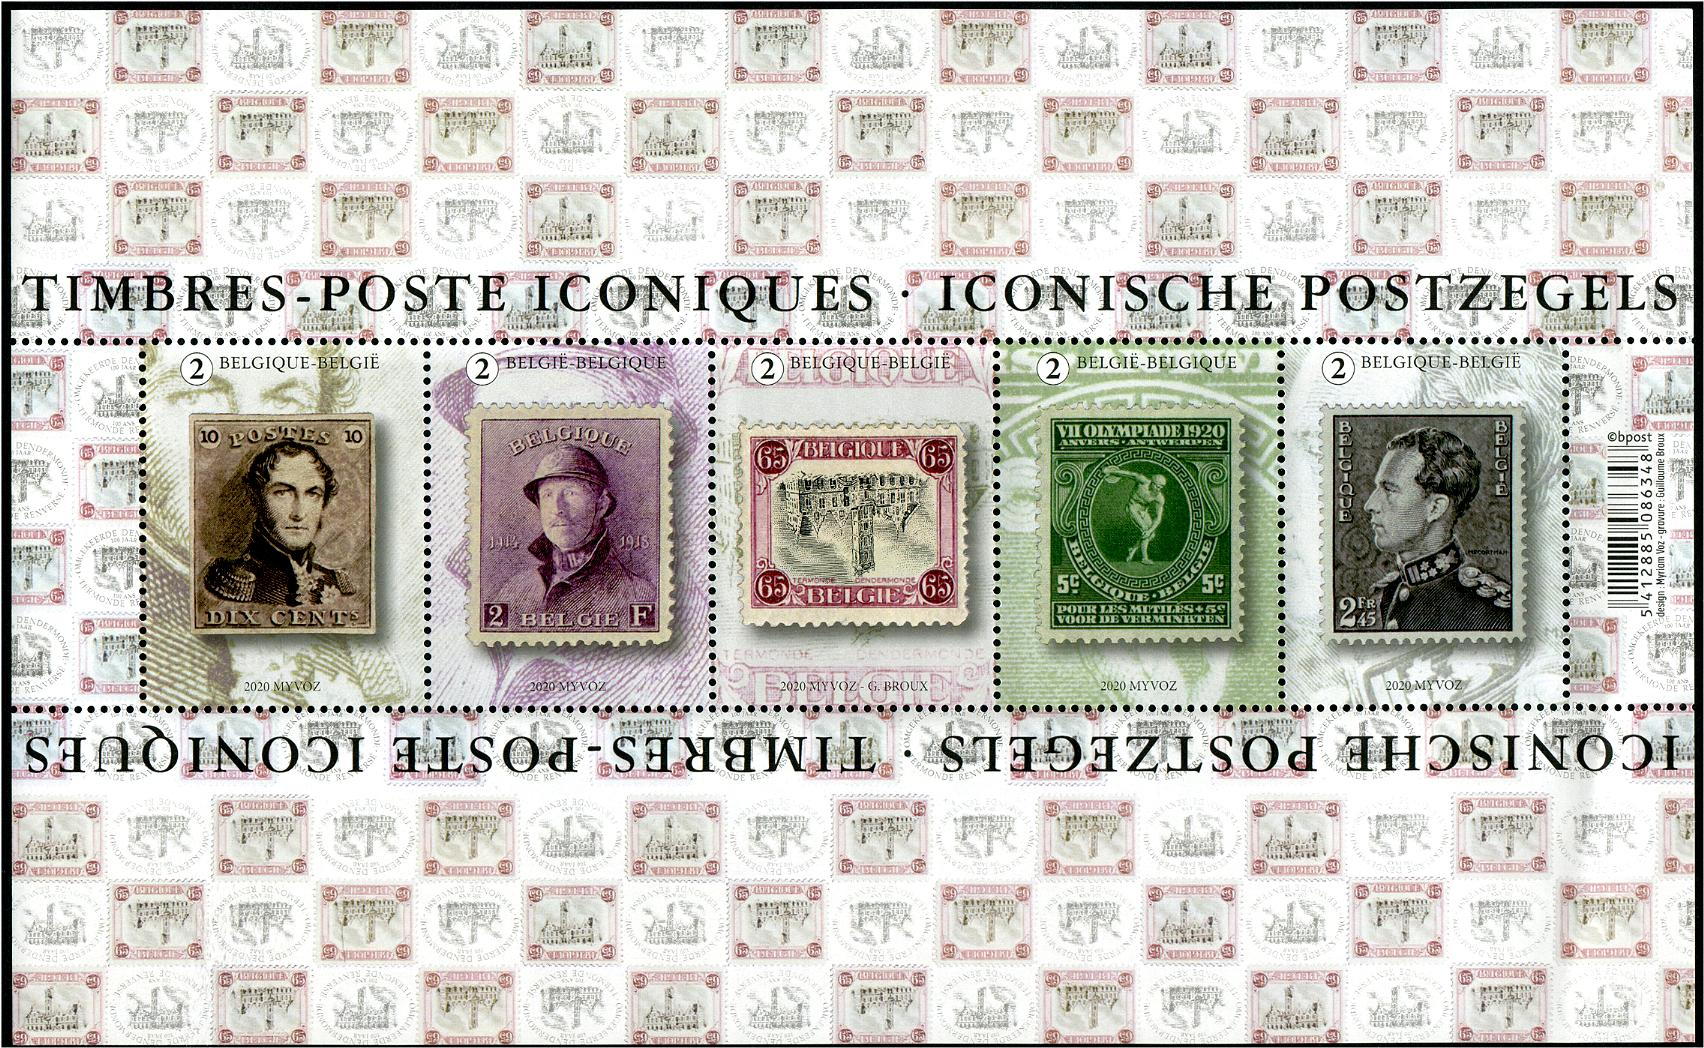 BELGIUM - Iconic Stamps S.O.S. Sheetlet of 5 Different (1)